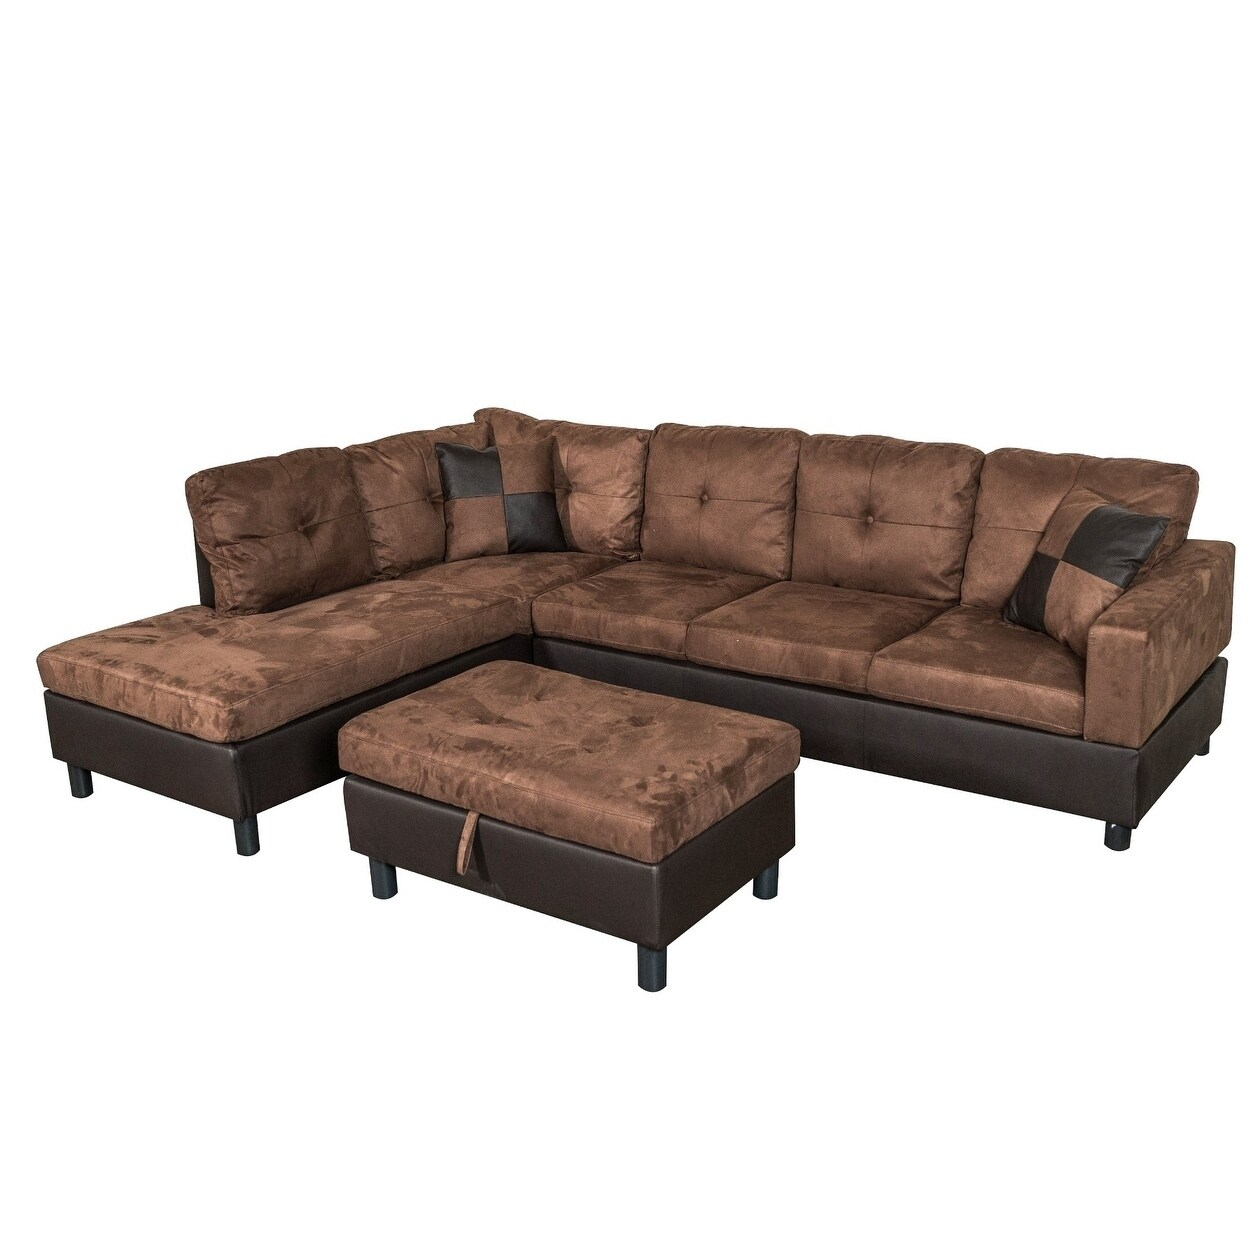 Shop Suede Sectional Sofa with Faux Leather Base and Storage Ottoman ...